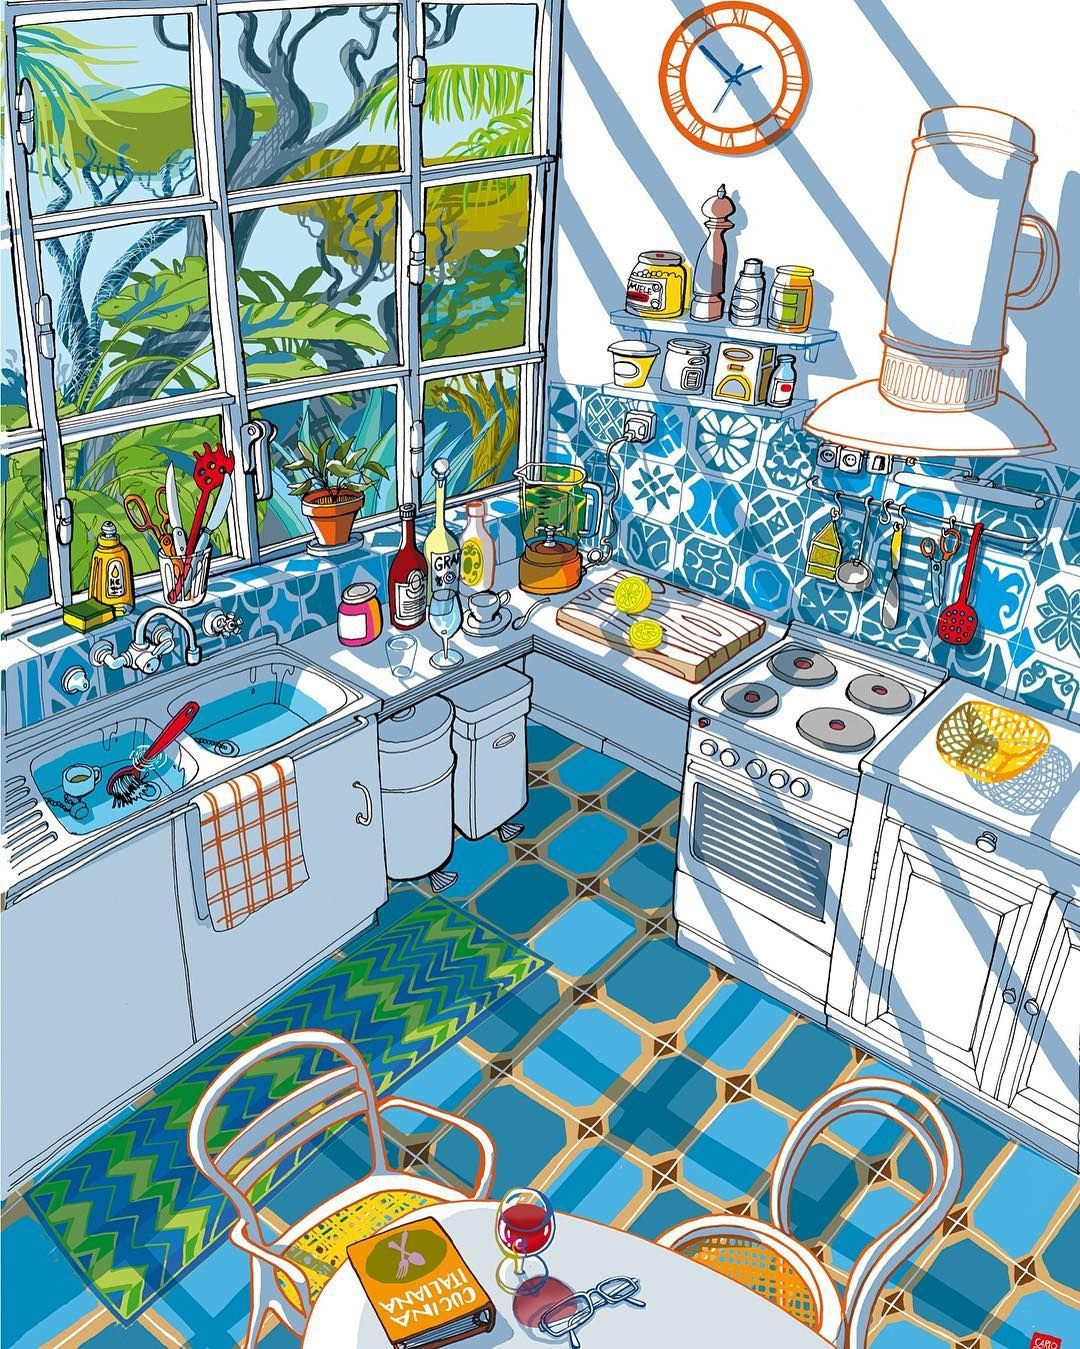 Italian Kitchen in the Summer light. Illustration by Carlo Stanga.  Carlo Stanga is an illustrator living and working in Berlin. He creates images for books newspaper articles advertising campaigns covers and more. His art recieved many awards and now he also has experience in the fields of designfashion and animation.  Итальянская кухня в летнем свете. Иллюстрация Карло Станга. Иллюстратор Карло Станга живет и работает в Берлине. Он создает иллюстрации для книг газетных статей рекламных…